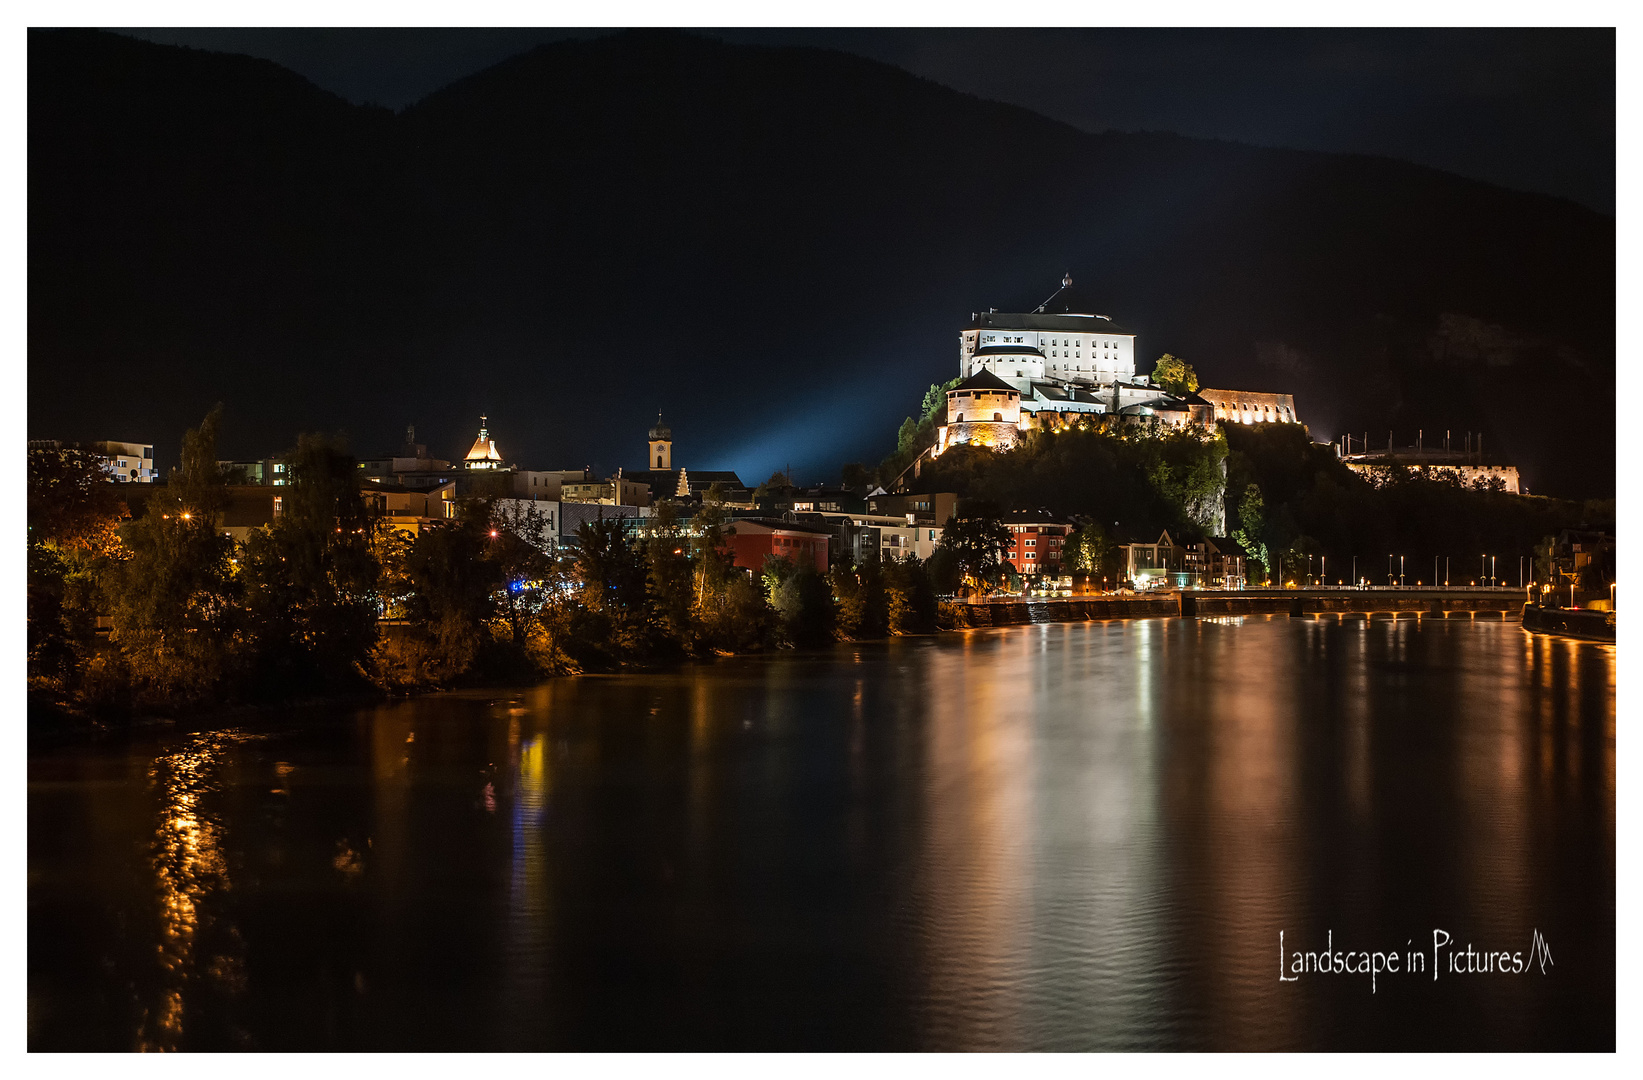 Festung Kufstein at Night